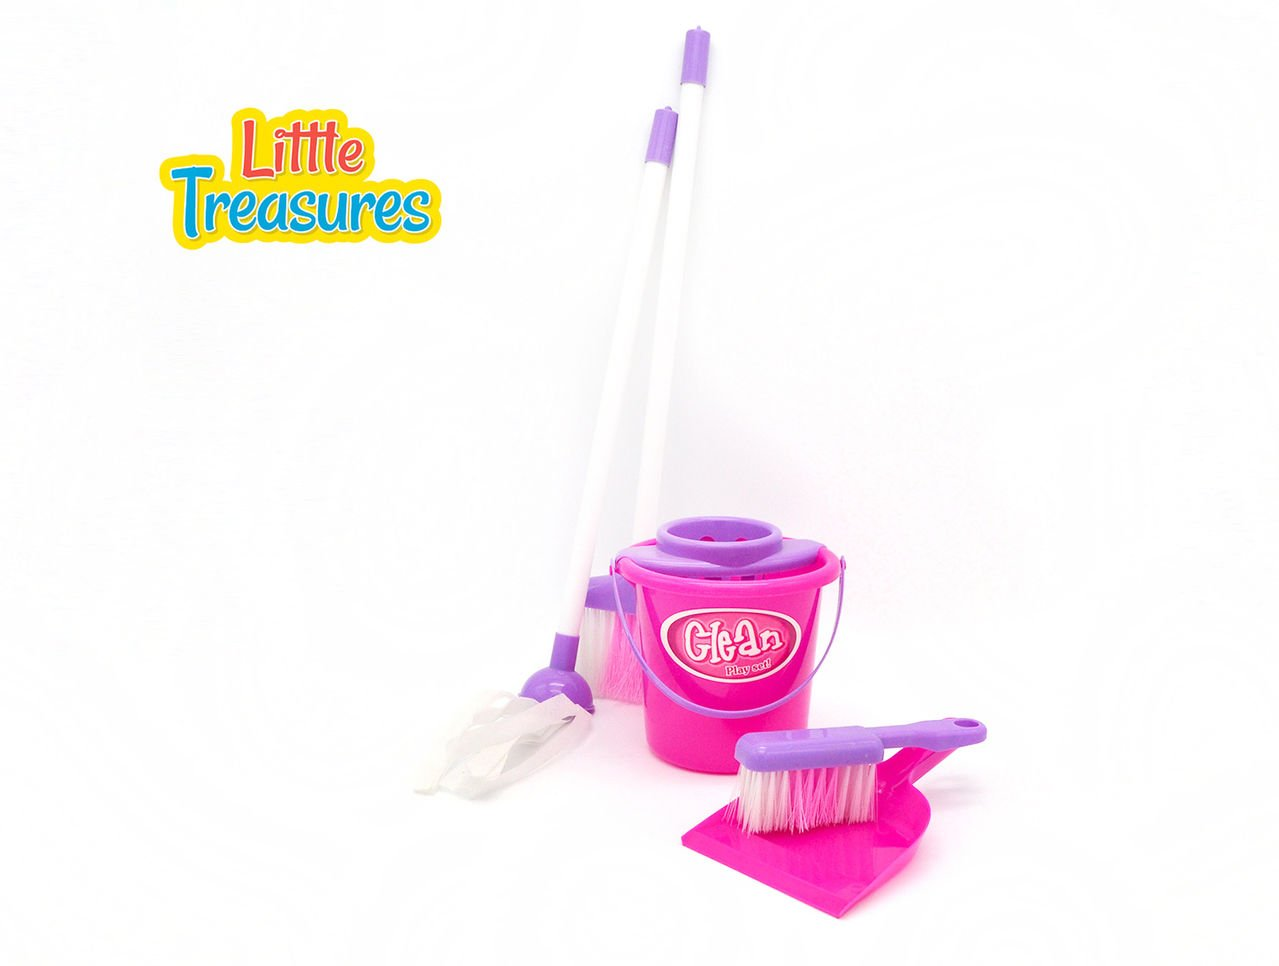 Little Treasures Little Helper 5 piece pretend and play deluxe Cleaning Play Set with bucket, dustpan and brush, mop and broom